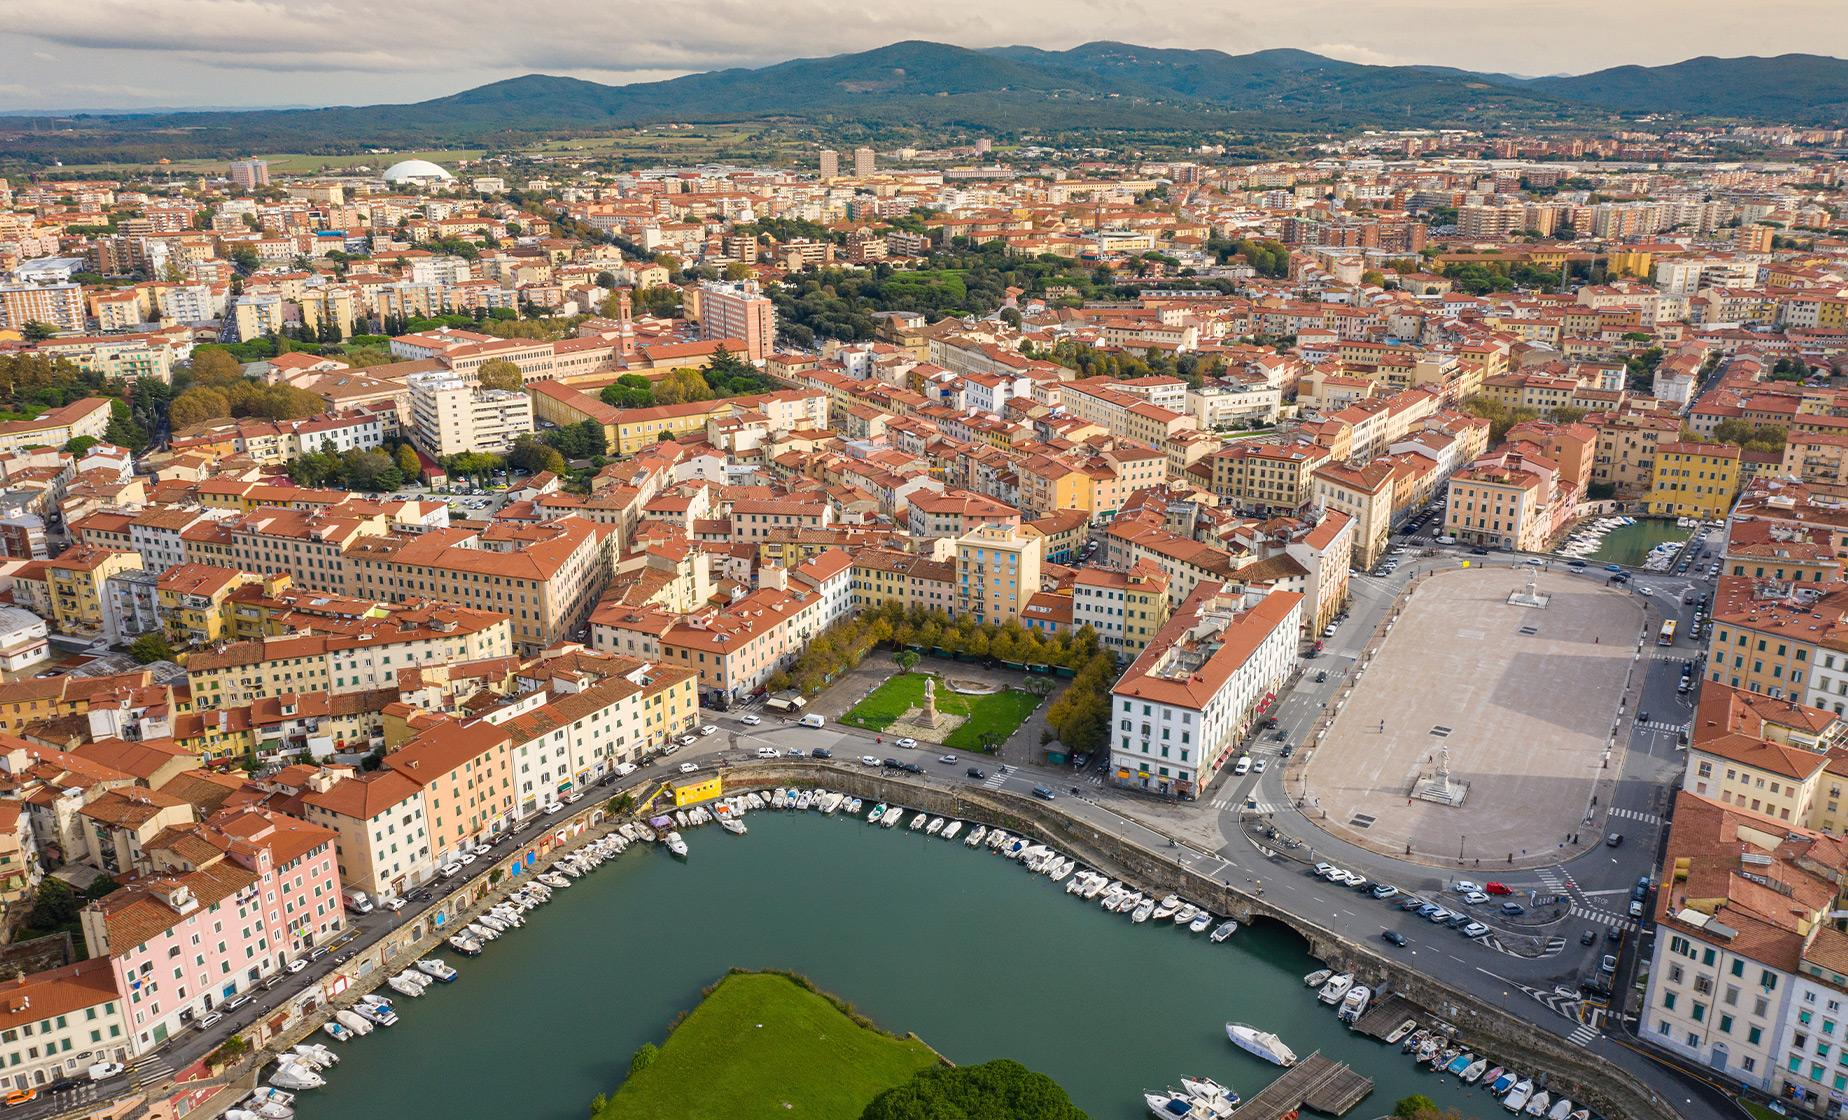 Hop On Hop Off Sightseeing Bus Cruise Tour in Livorno City